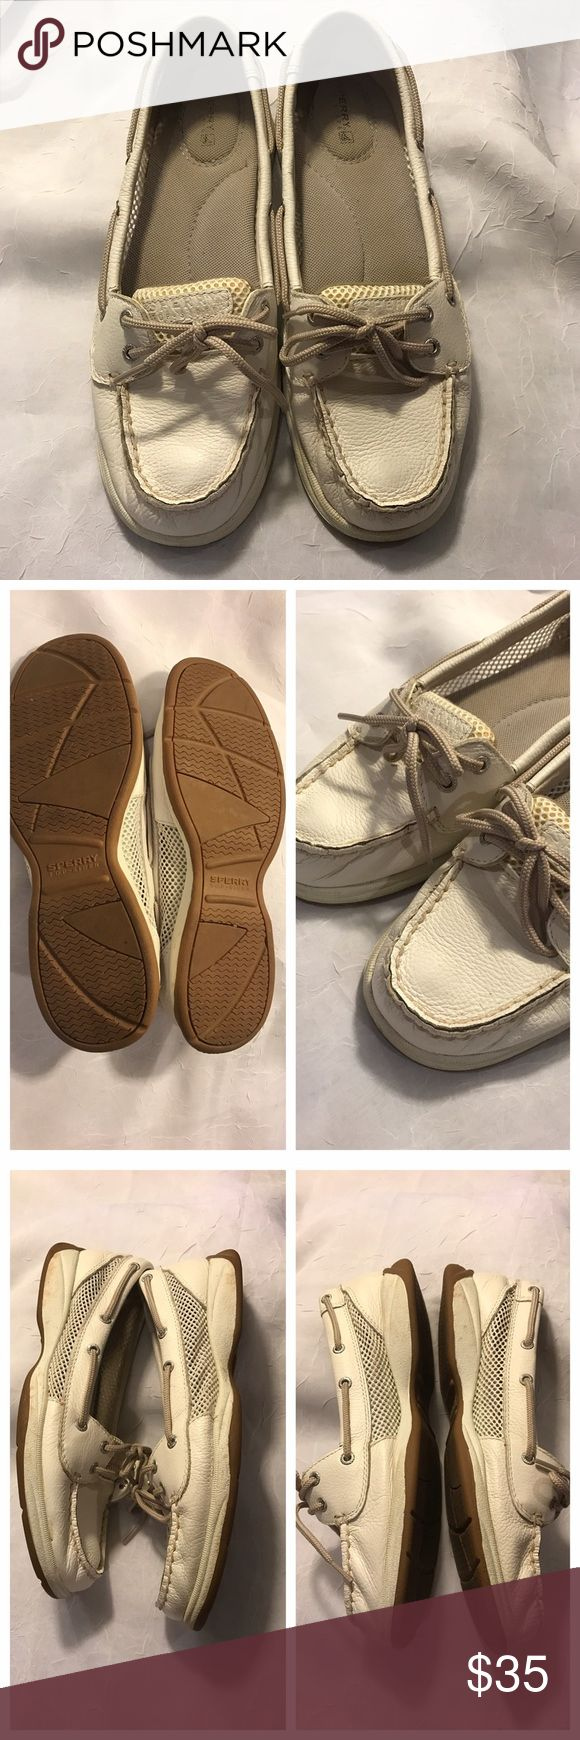 White Sperrys Very good condition. Minor imperfections. Please use zoom to view slight marks. Sperry Top-Sider Shoes Flats & Loafers